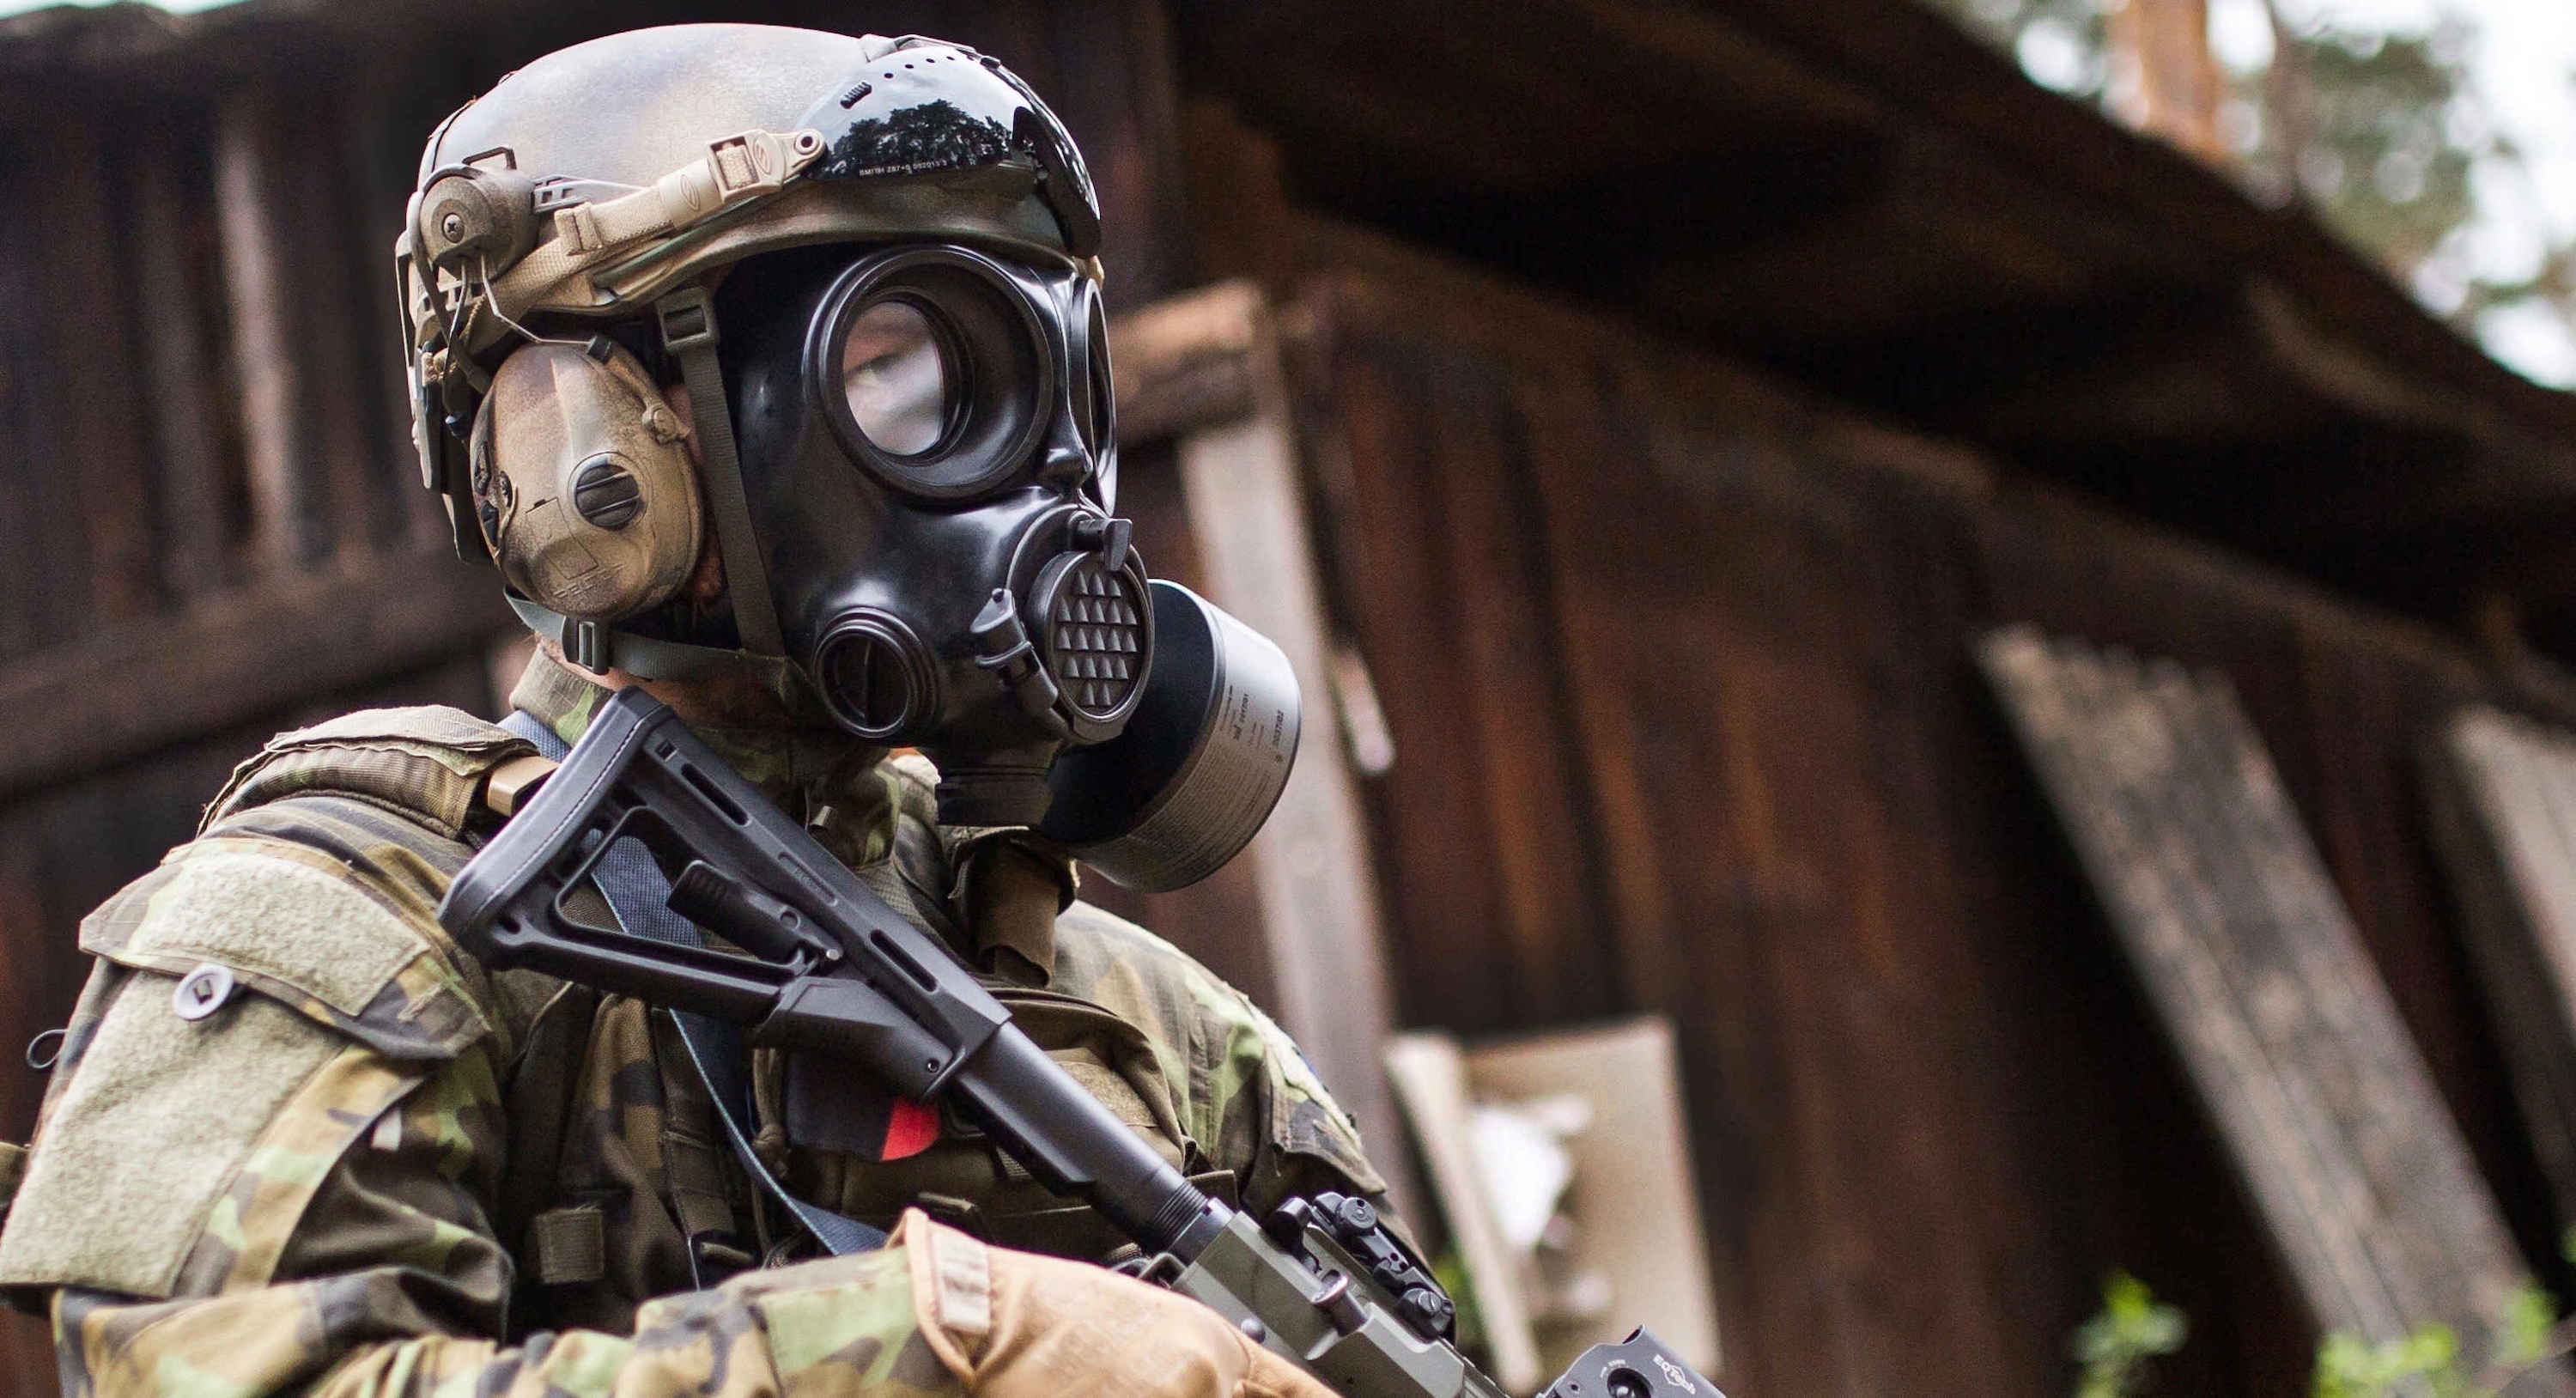 Solider standing sideways while wearing the CM-7M military gas mask